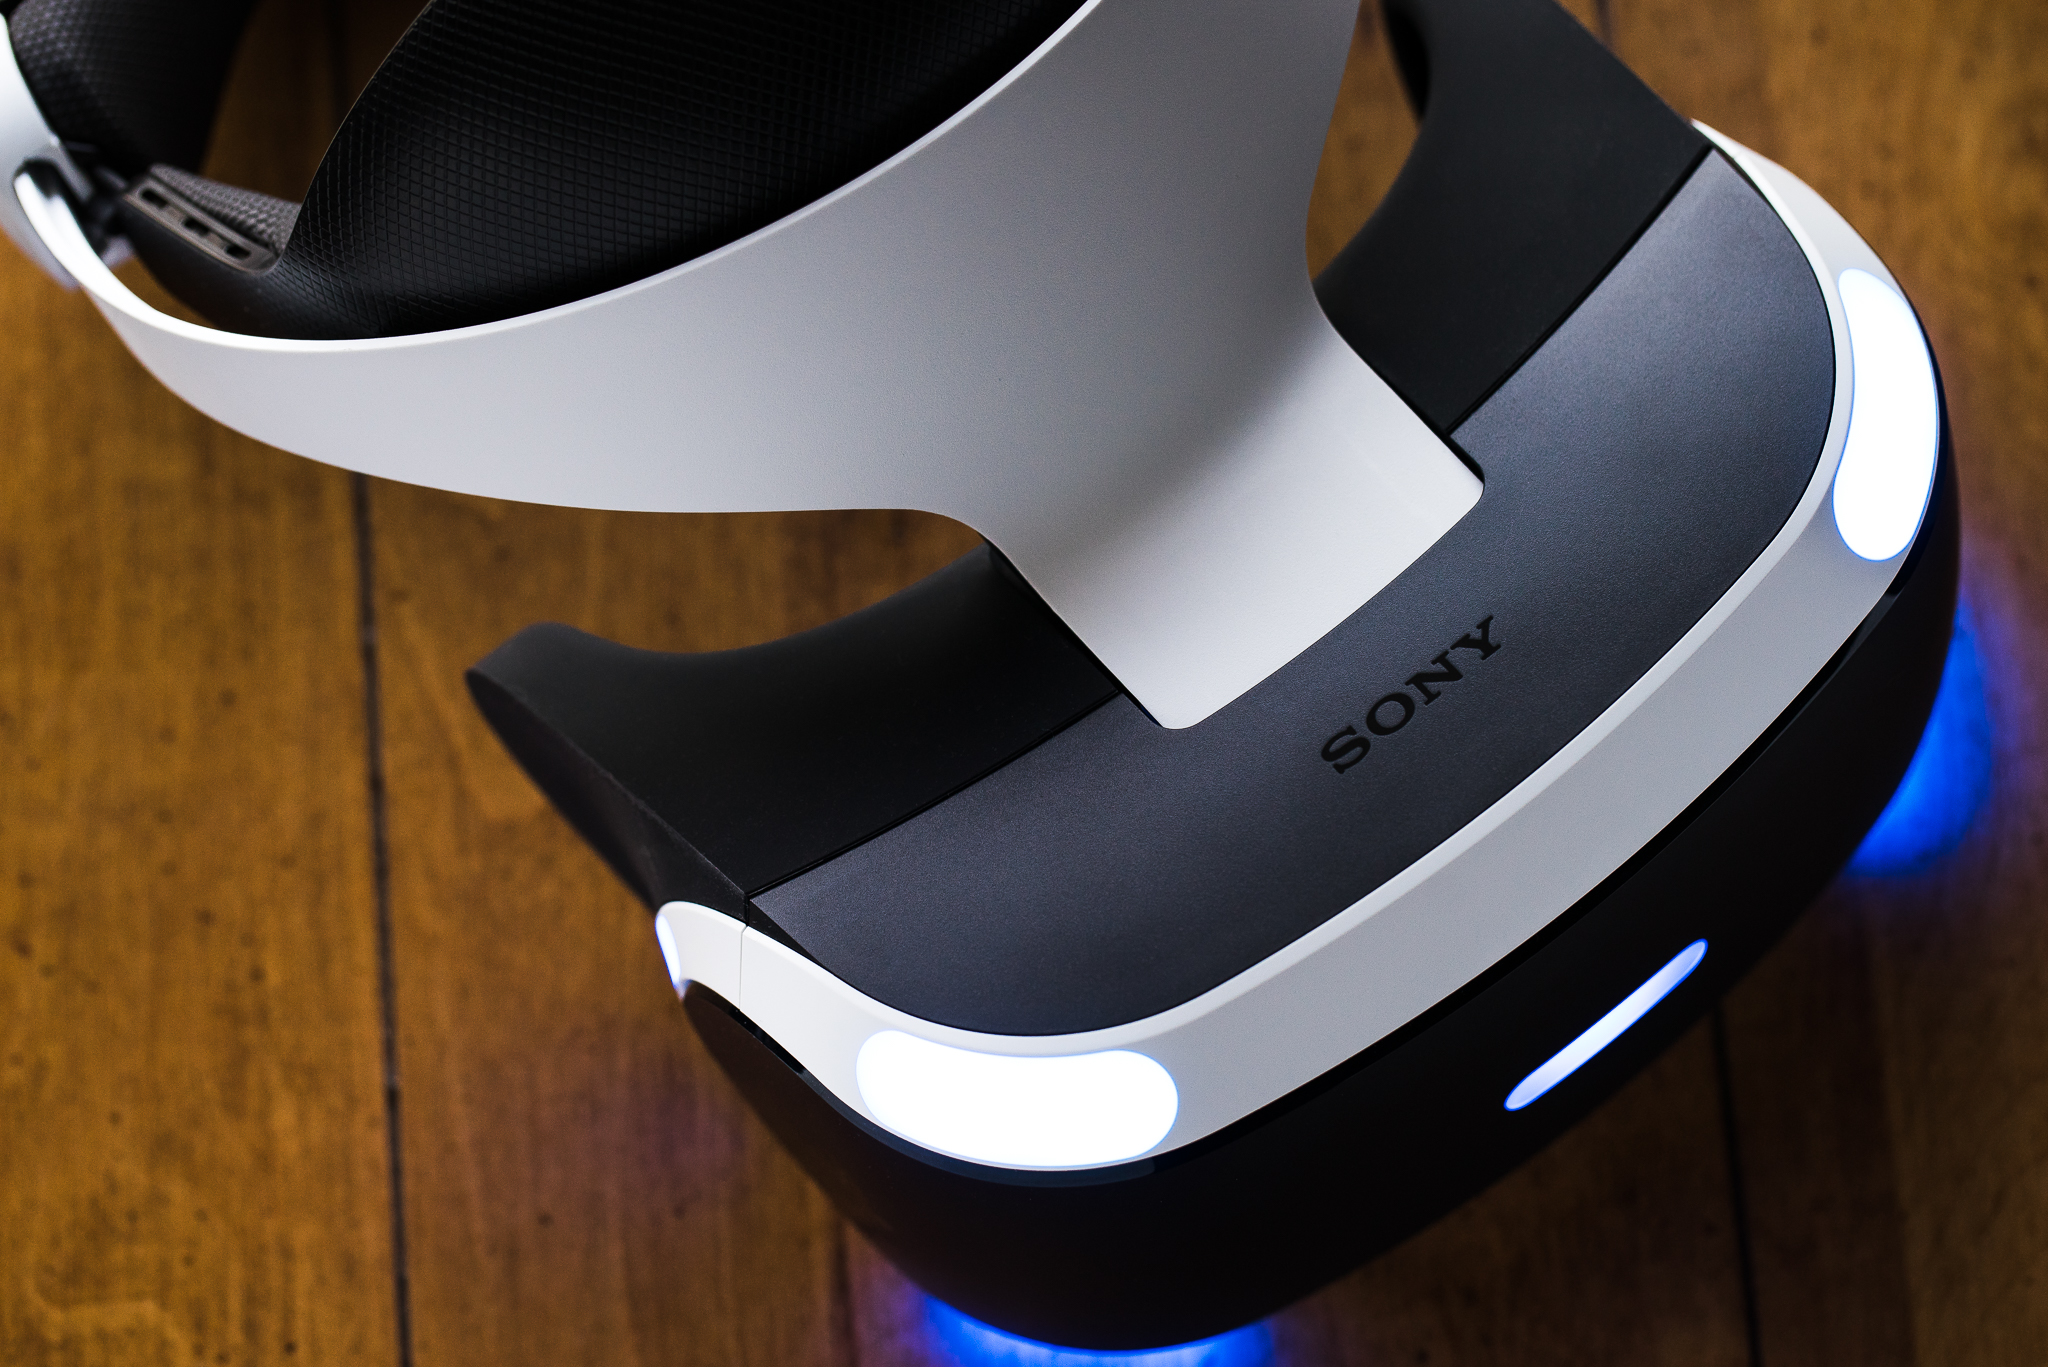 Sony's next PSVR release could be wireless, according to recent patent